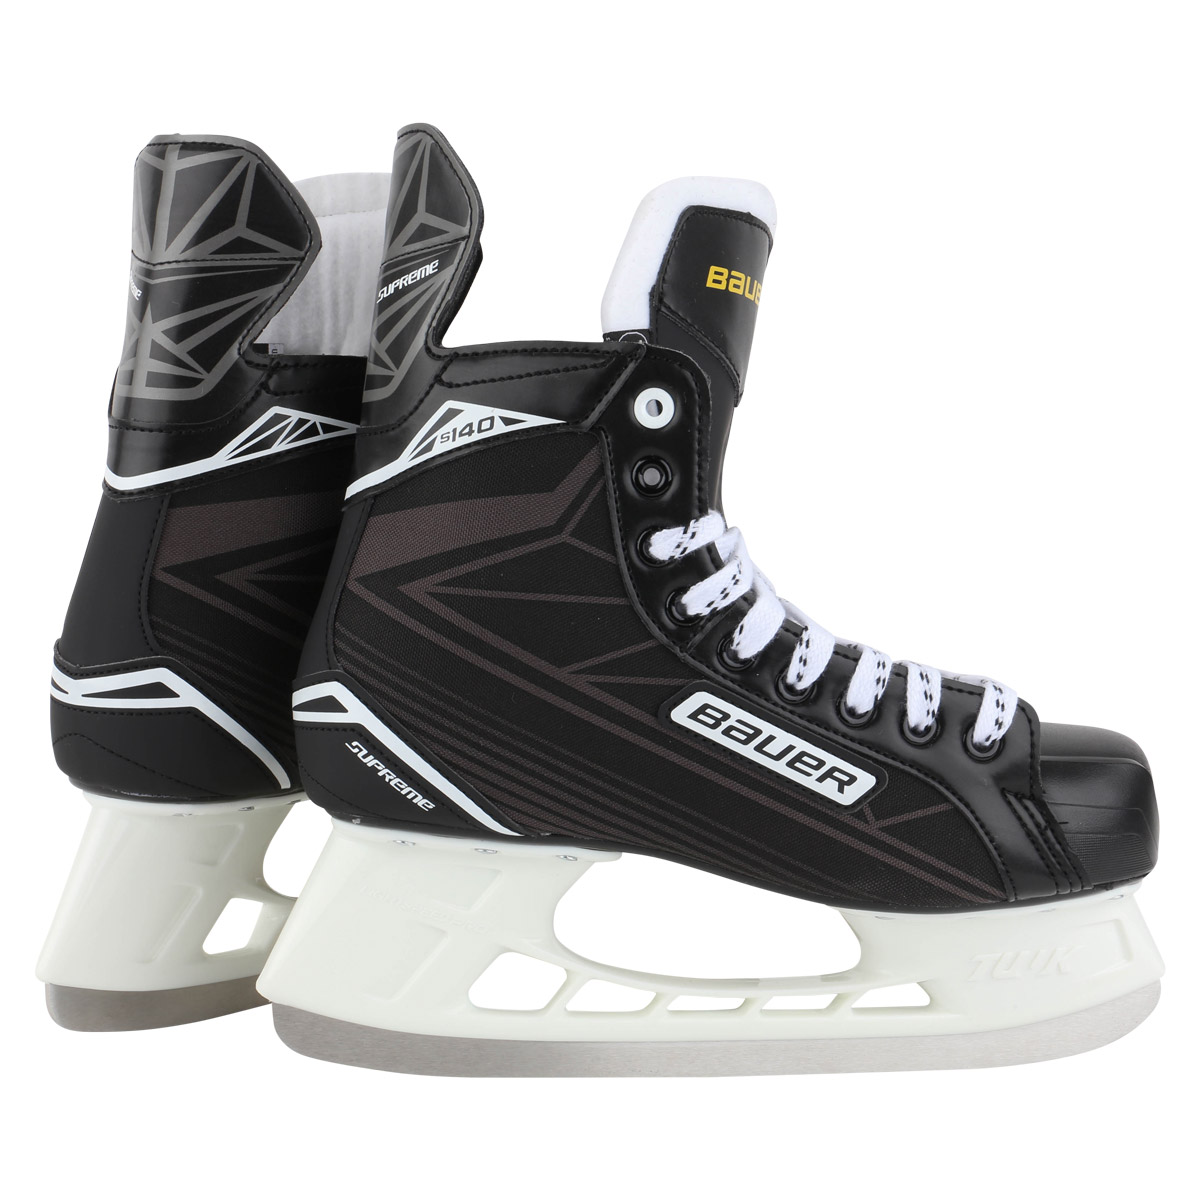 BAUER Supreme S140 youth